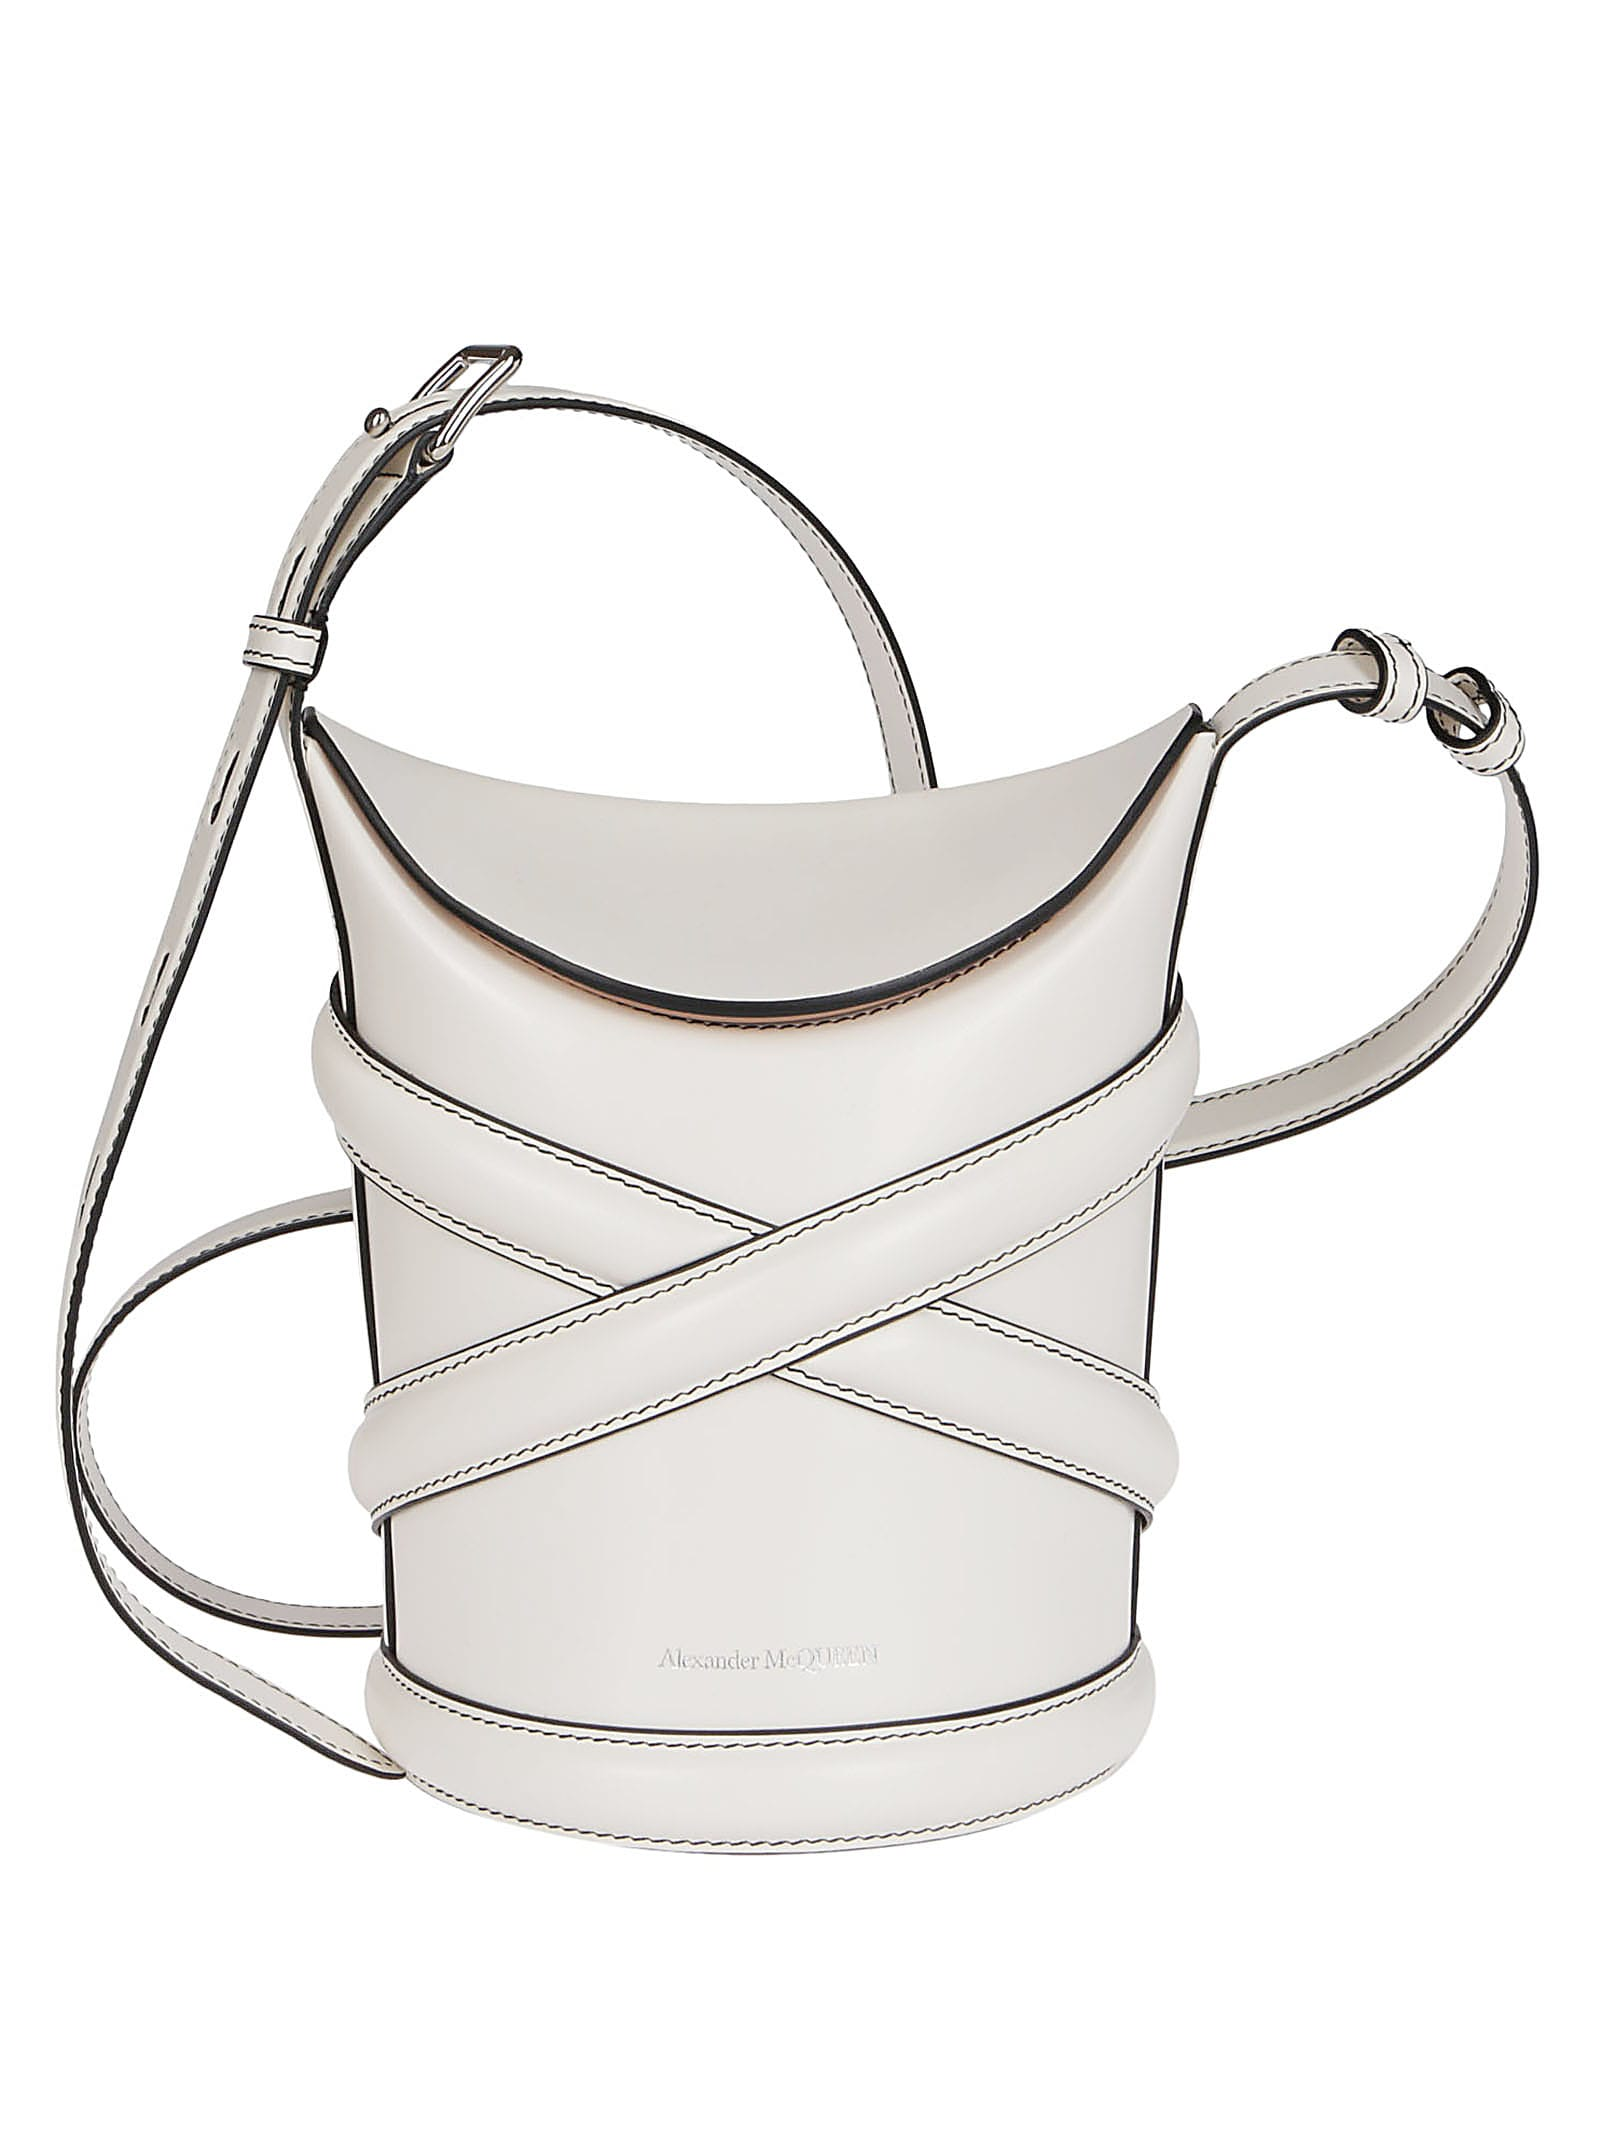 Alexander Mcqueen Leathers WHITE LEATHER THE CURVE BUCKET BAG